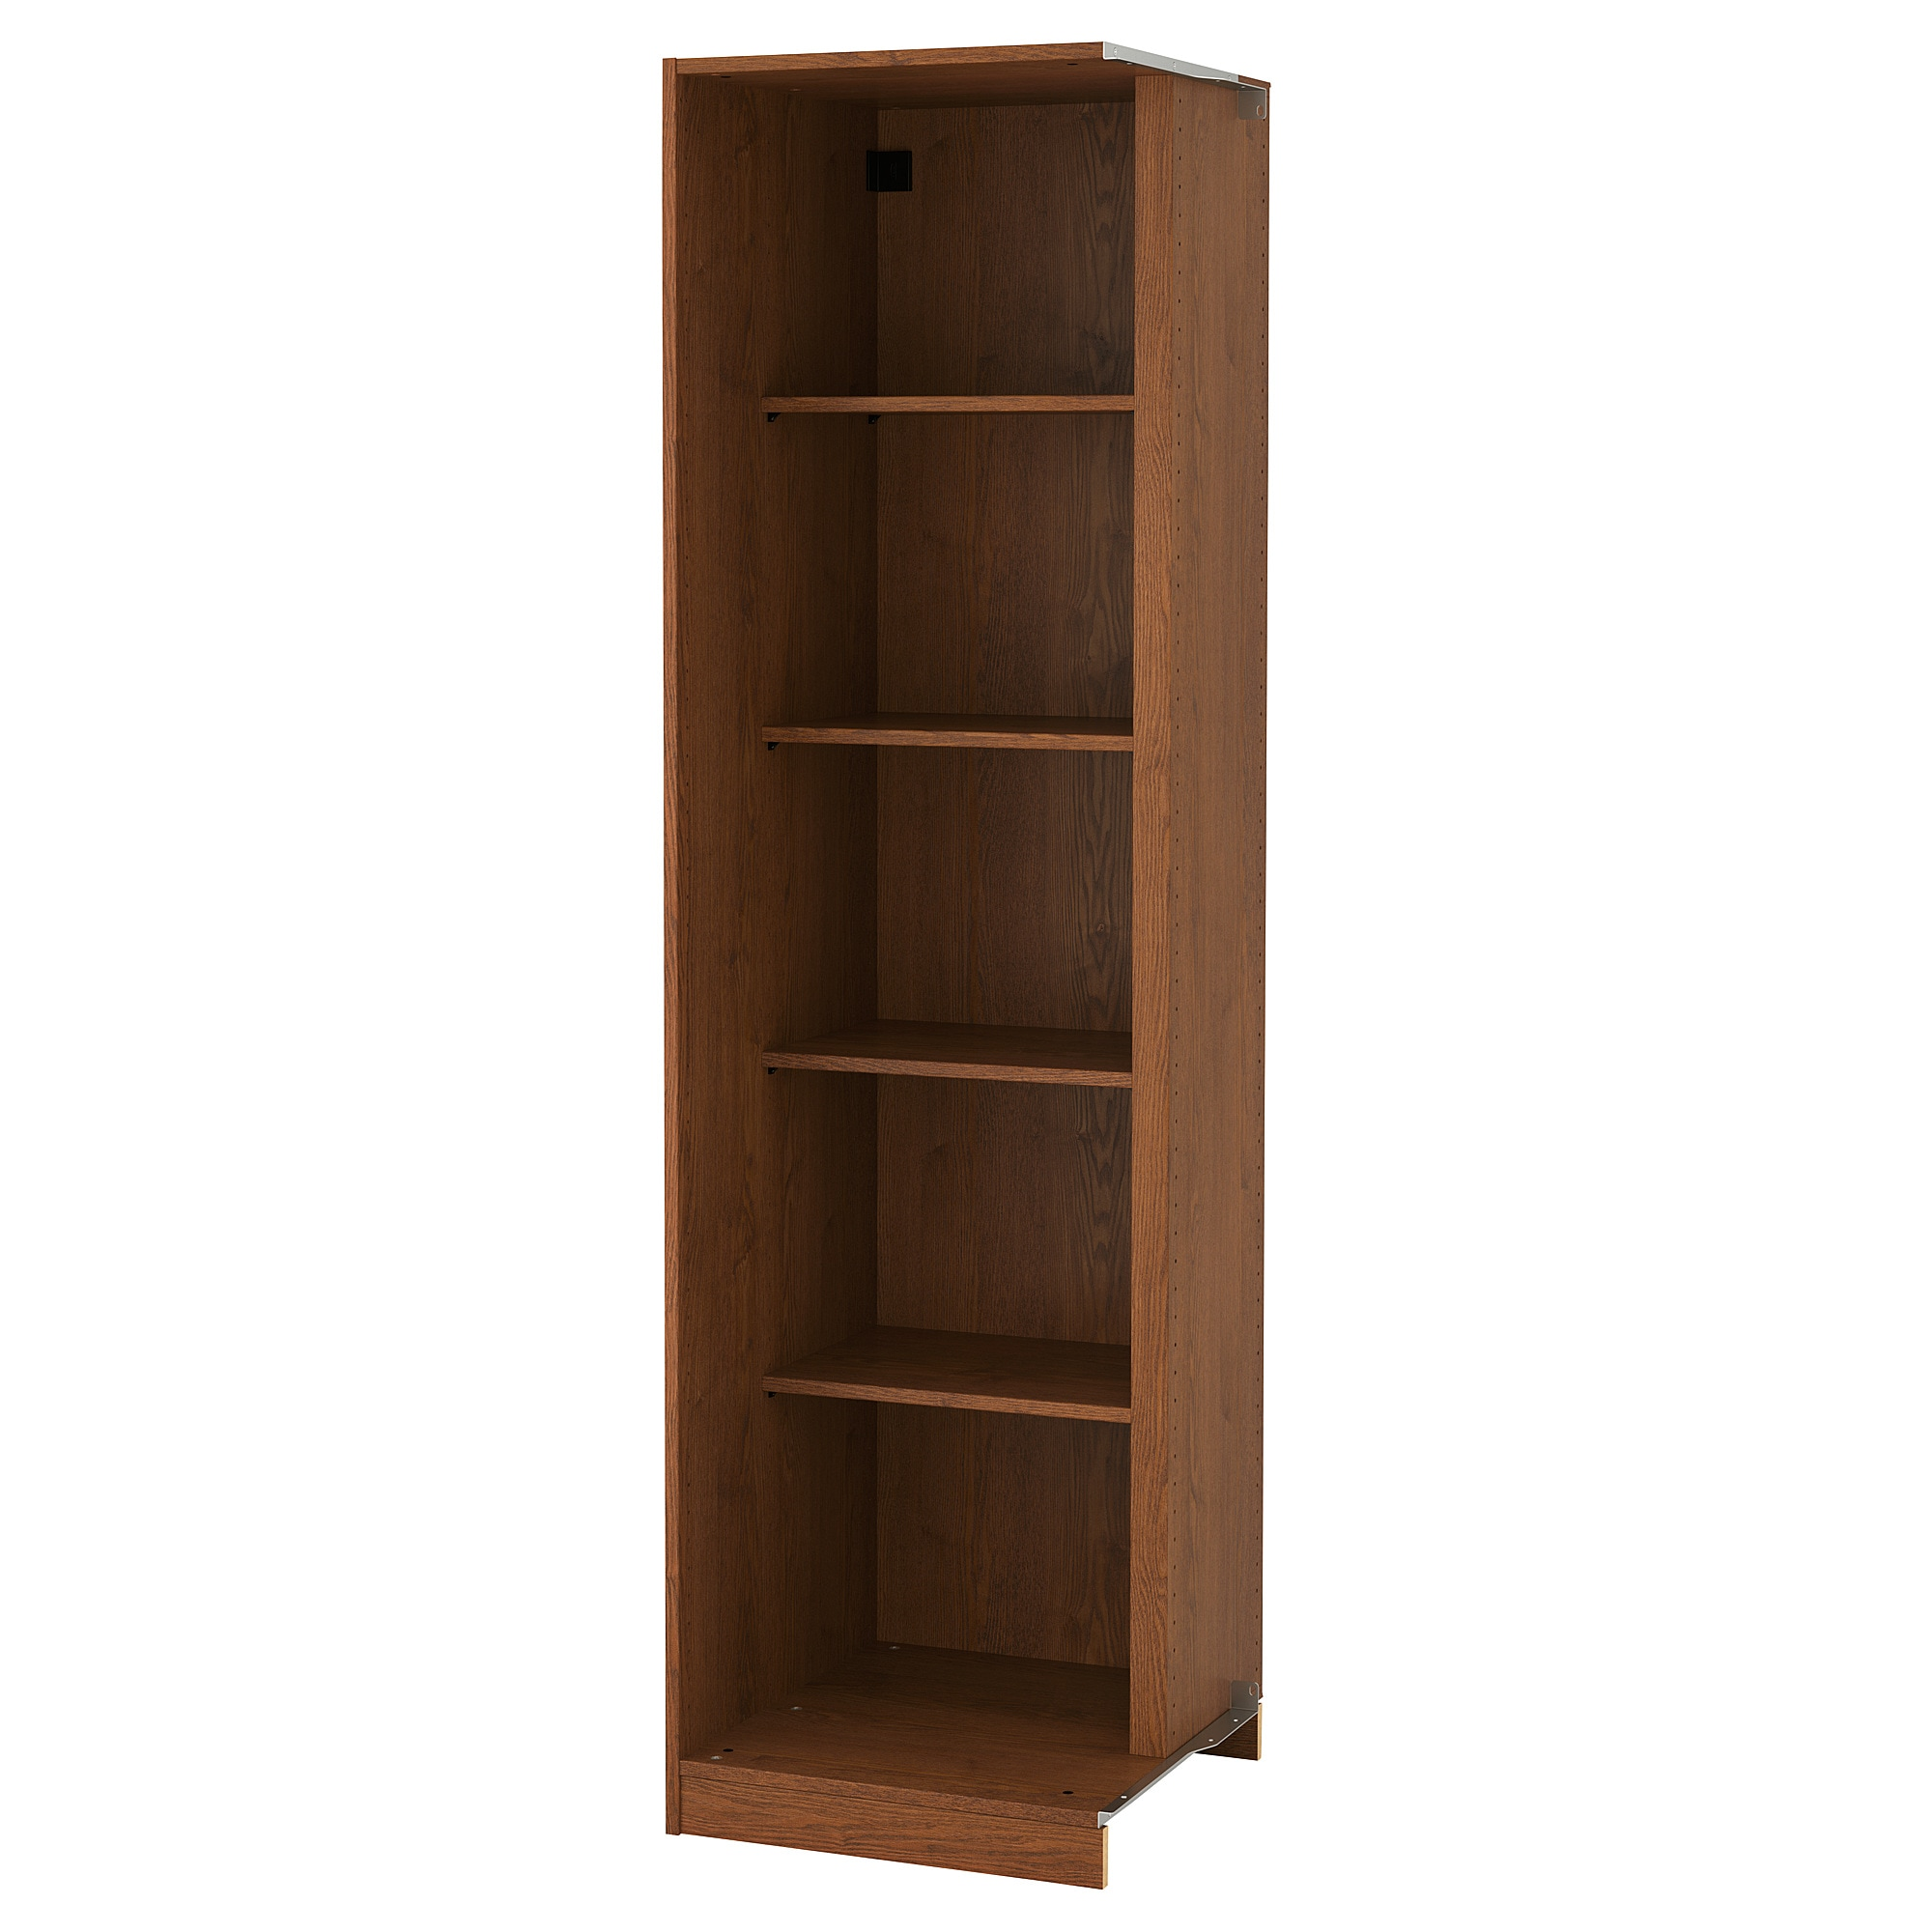 Pax Add-on Corner Unit With 4 Shelves, Brown Stained Ash Effect